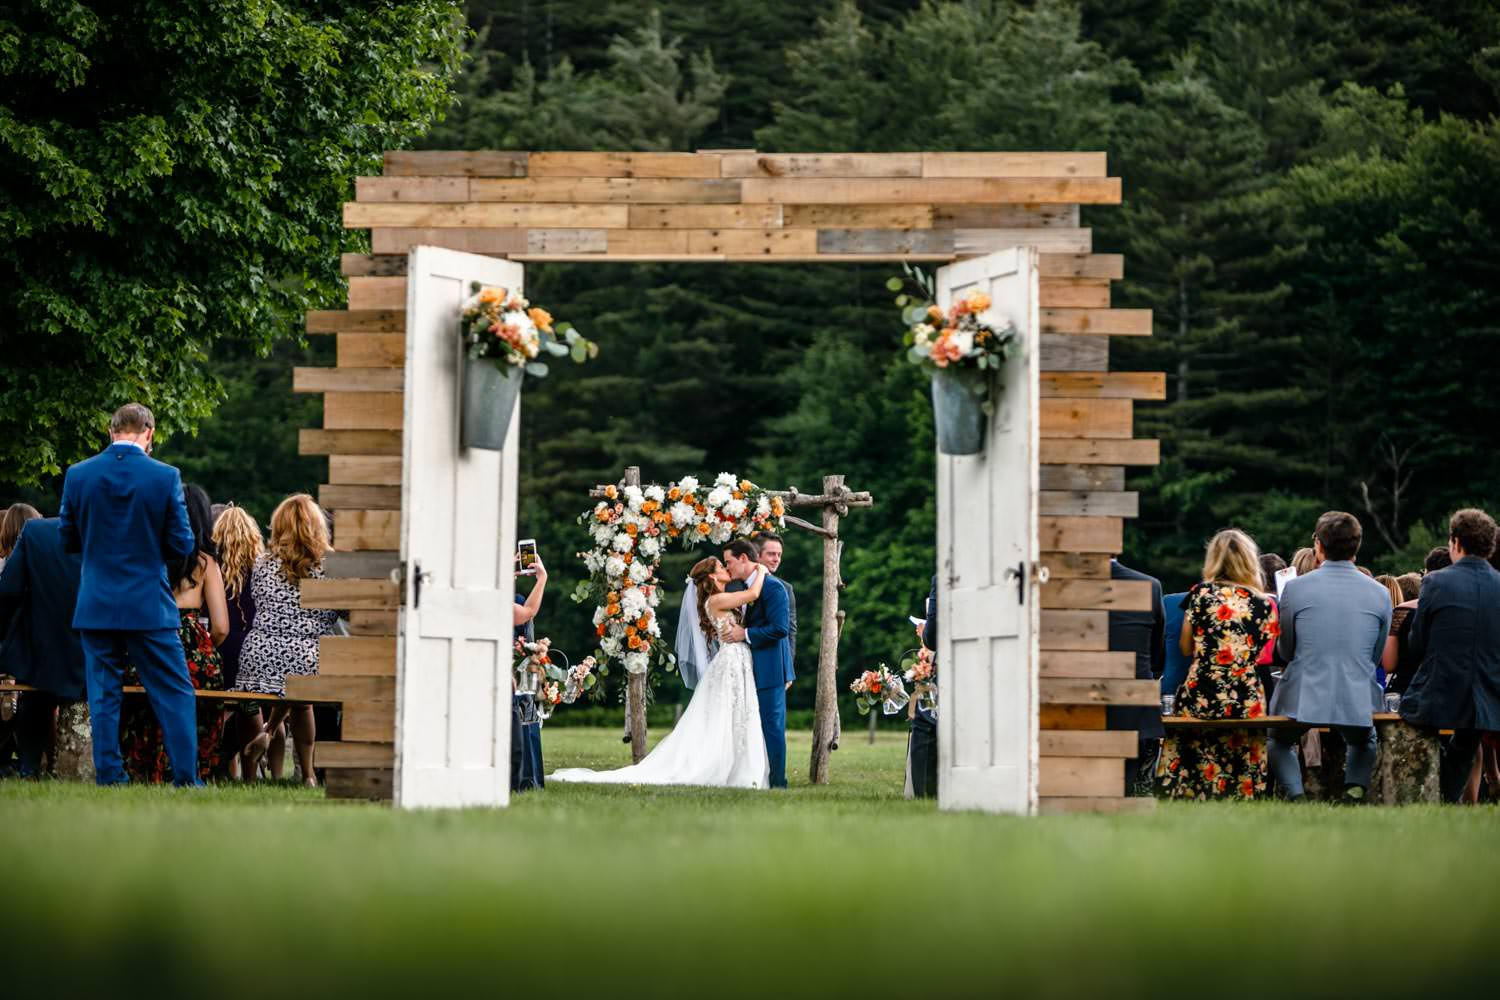 vermont wedding photographer captures bride and groom kissing through ceremony doorway at riverside farm